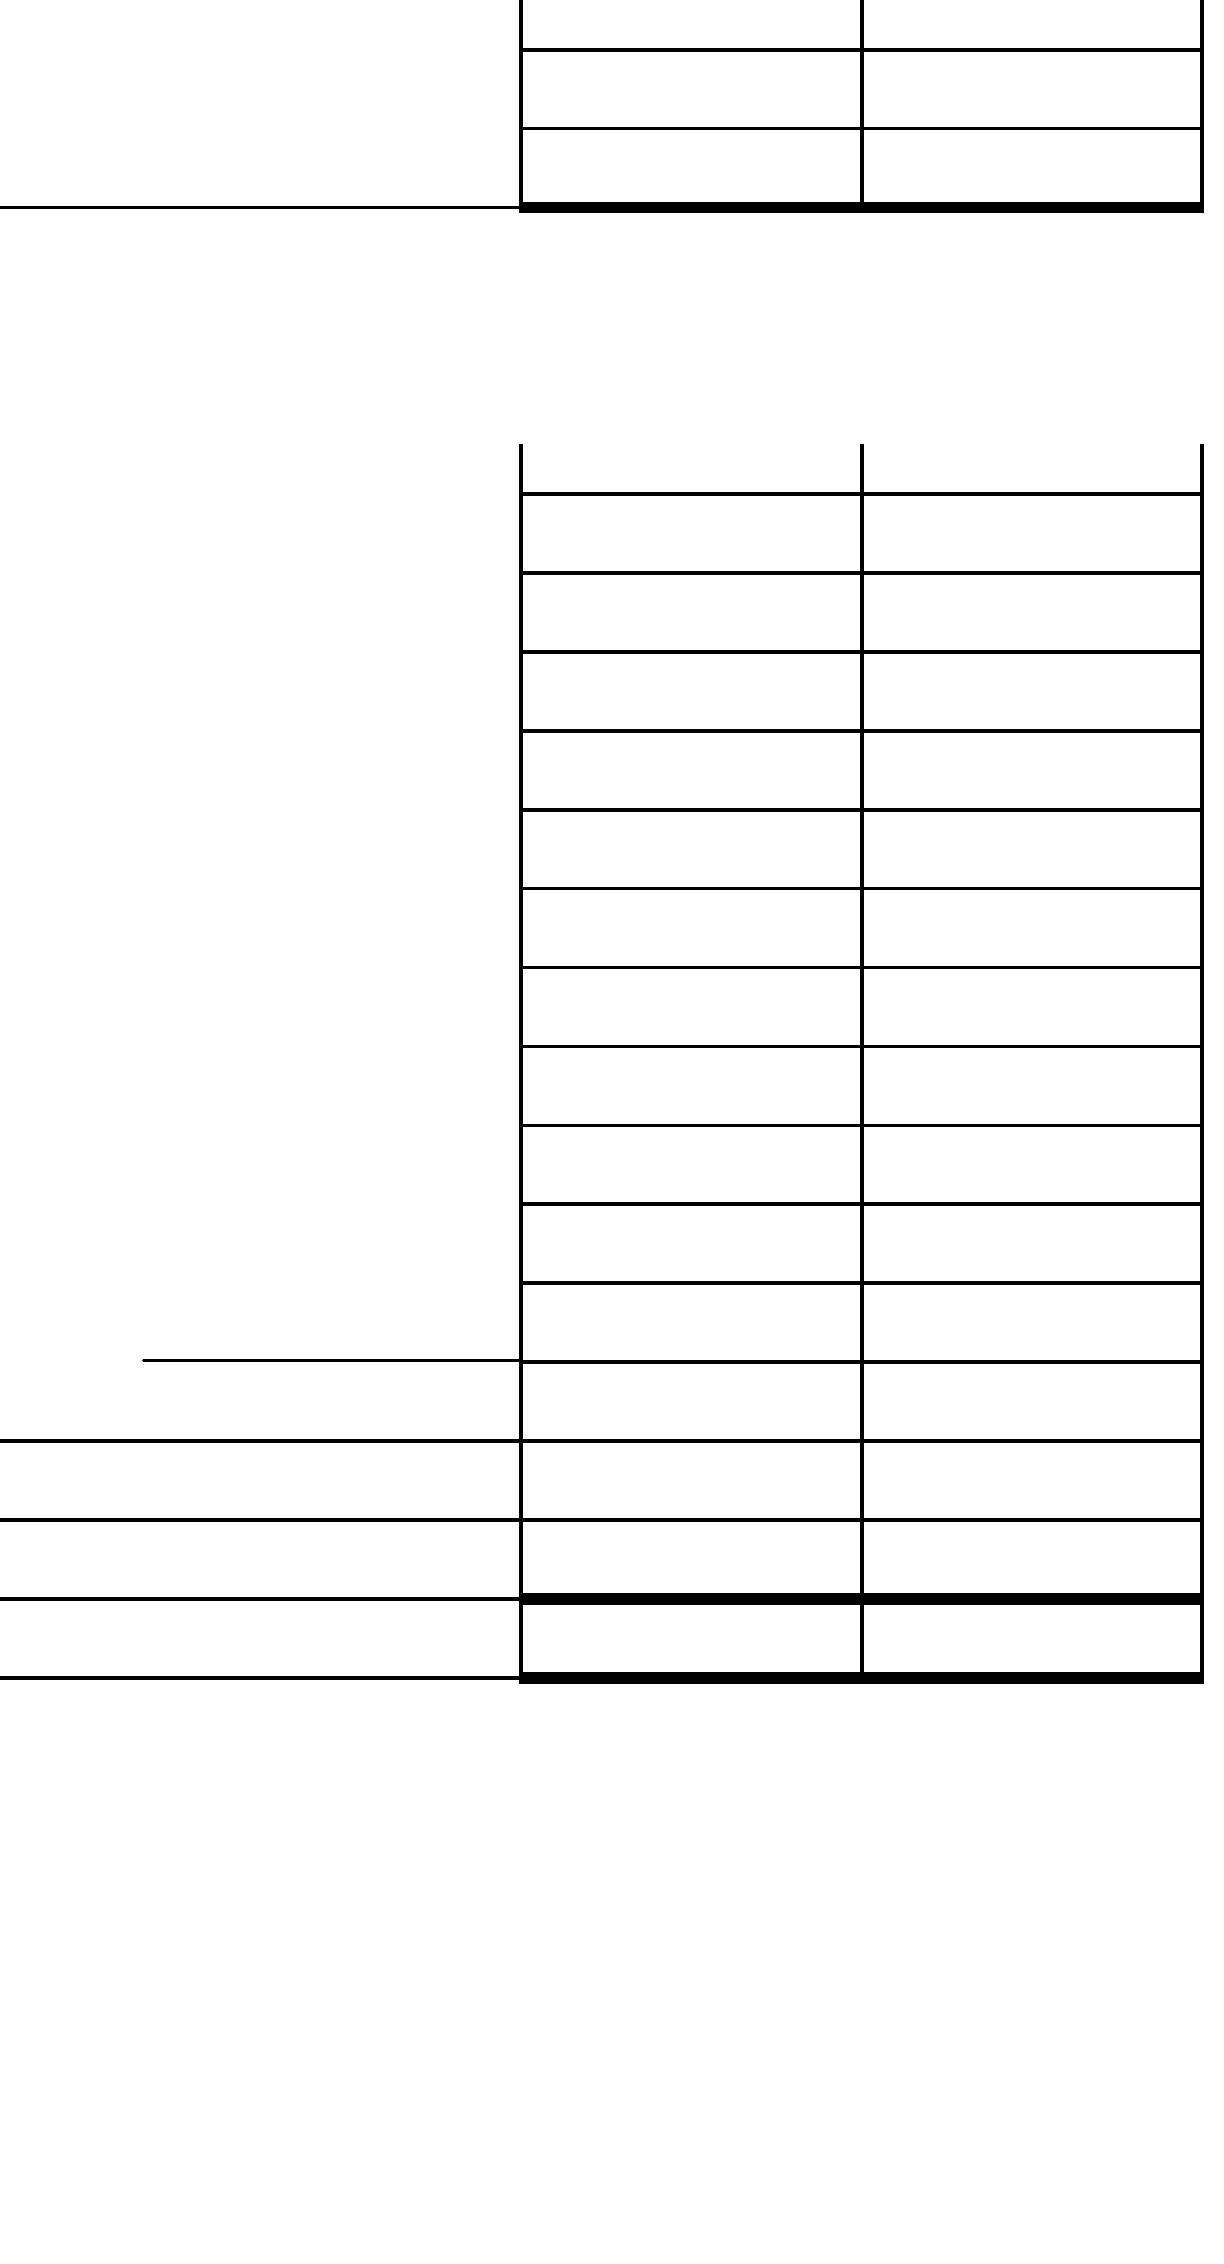 Blank Family Budget Worksheet Free Download